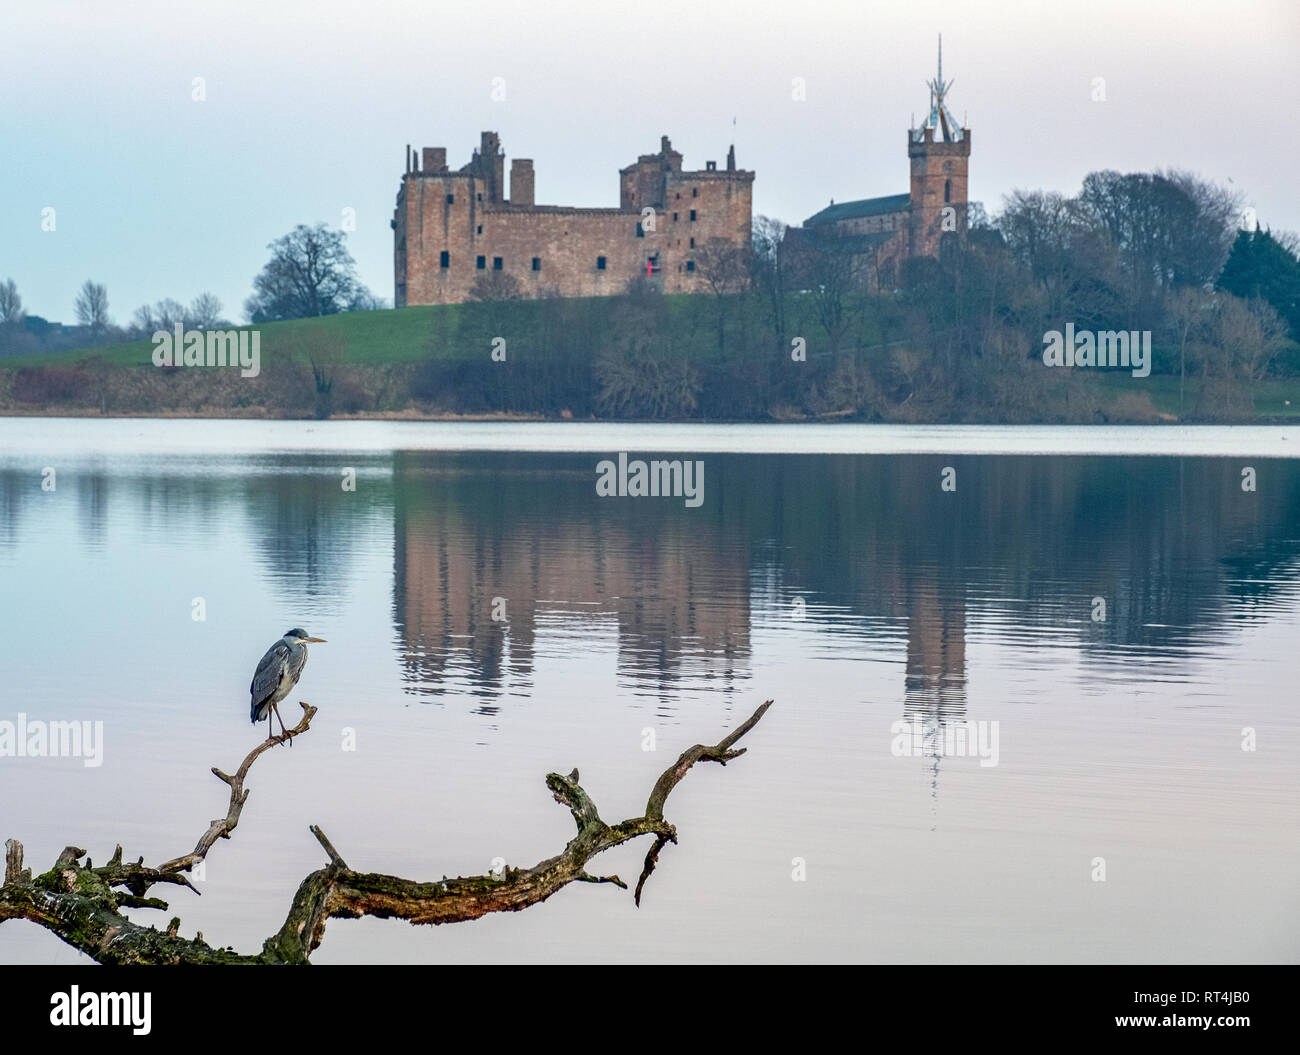 Linlithgow Palace, West Lothian, birthplace of Mary Queen of Scots. - Stock Image